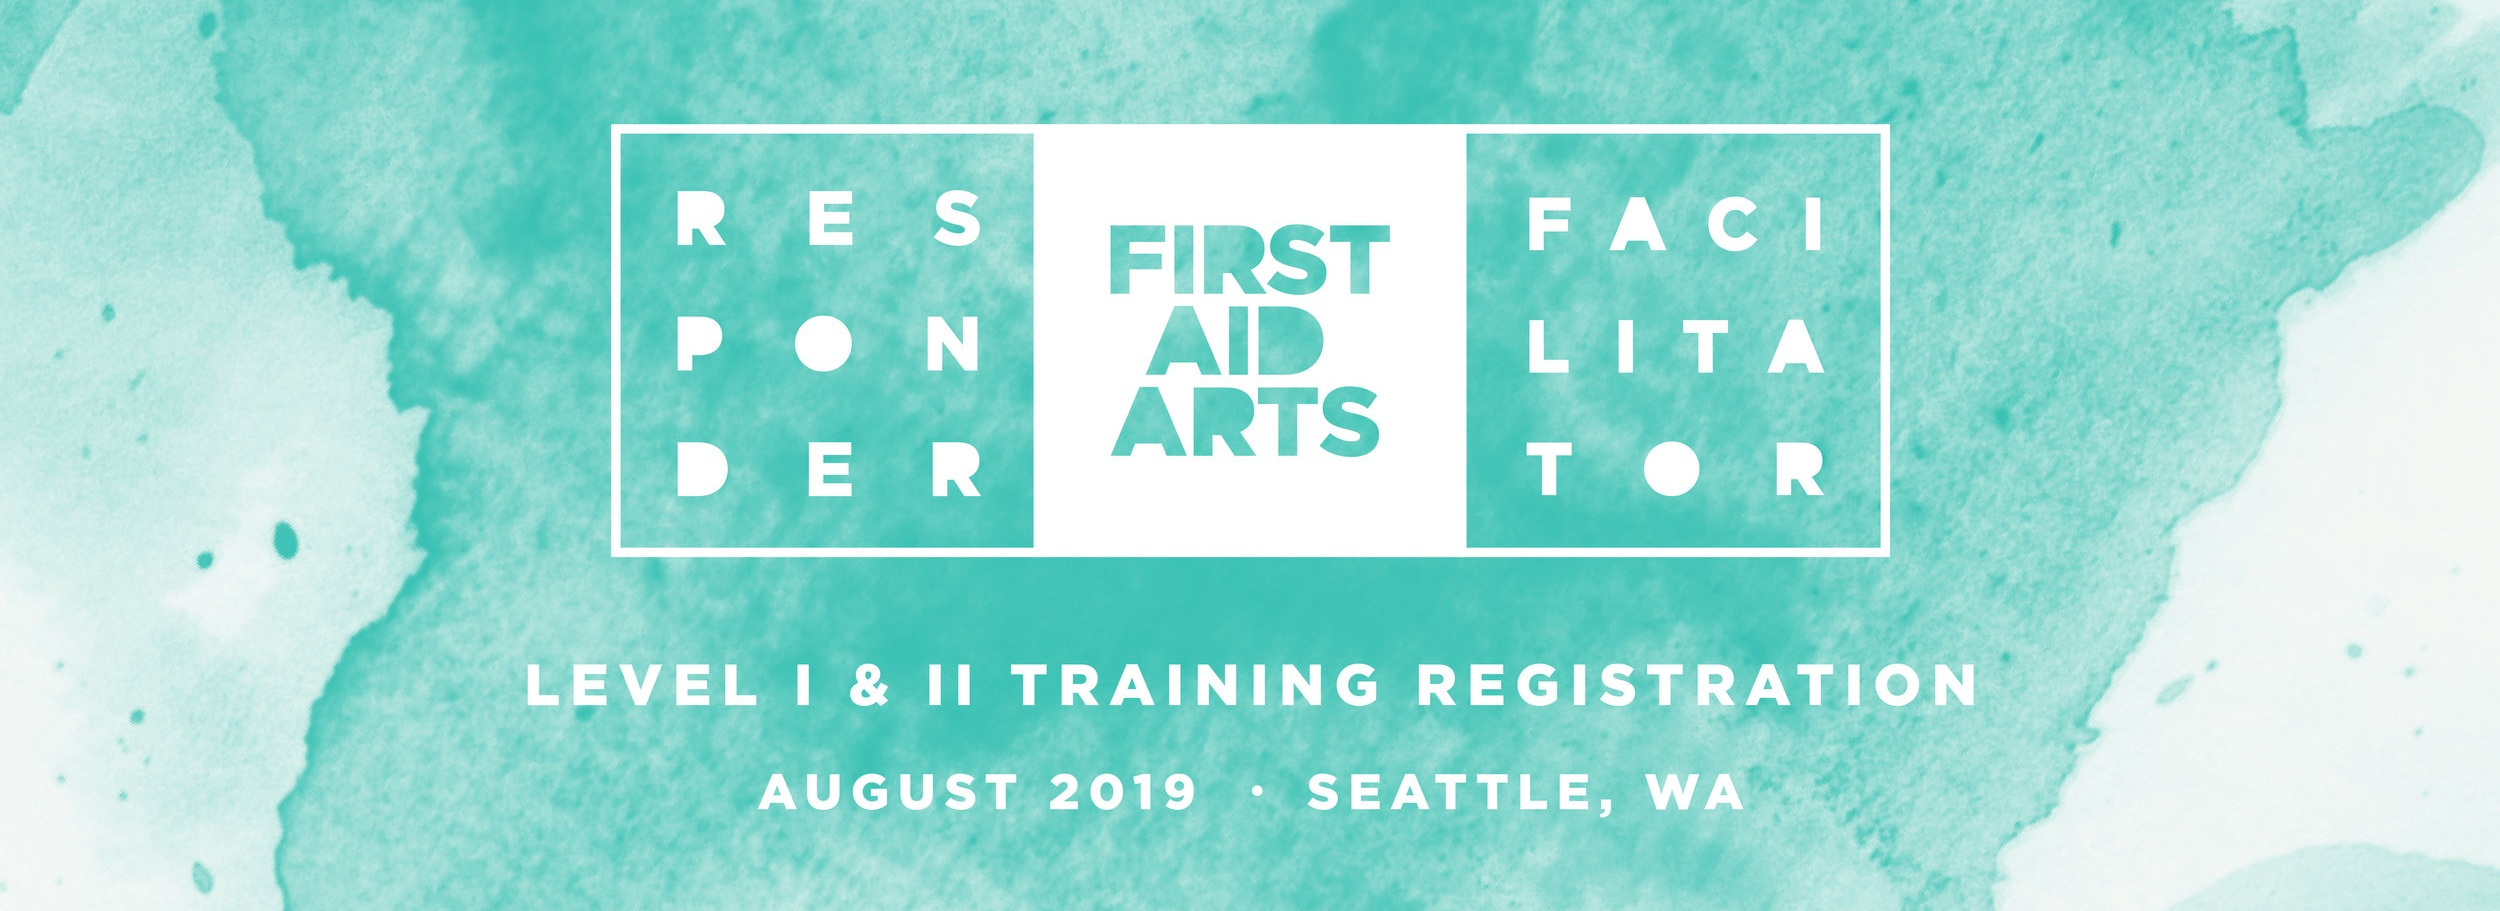 august+trainings+_evenbrite+banner_+teal+splash+text.jpg